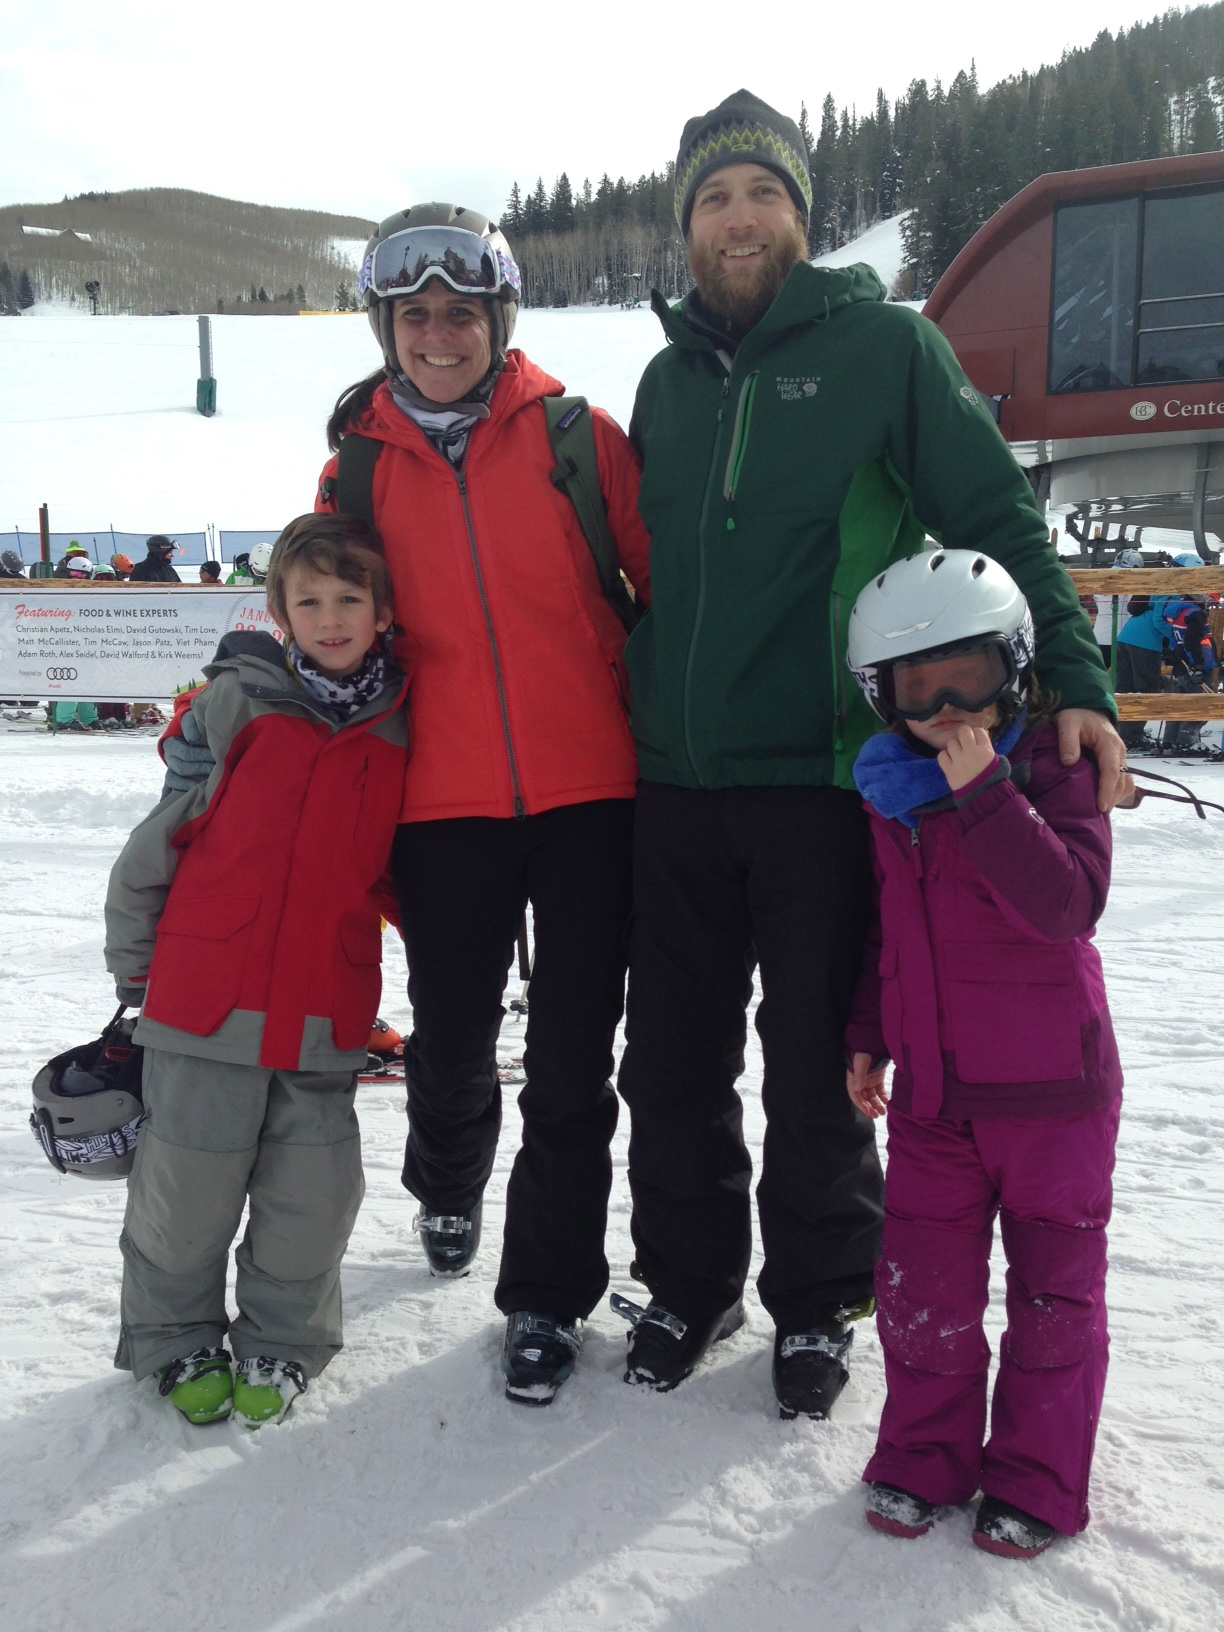 Sarah Bennett Skiing with Her Family